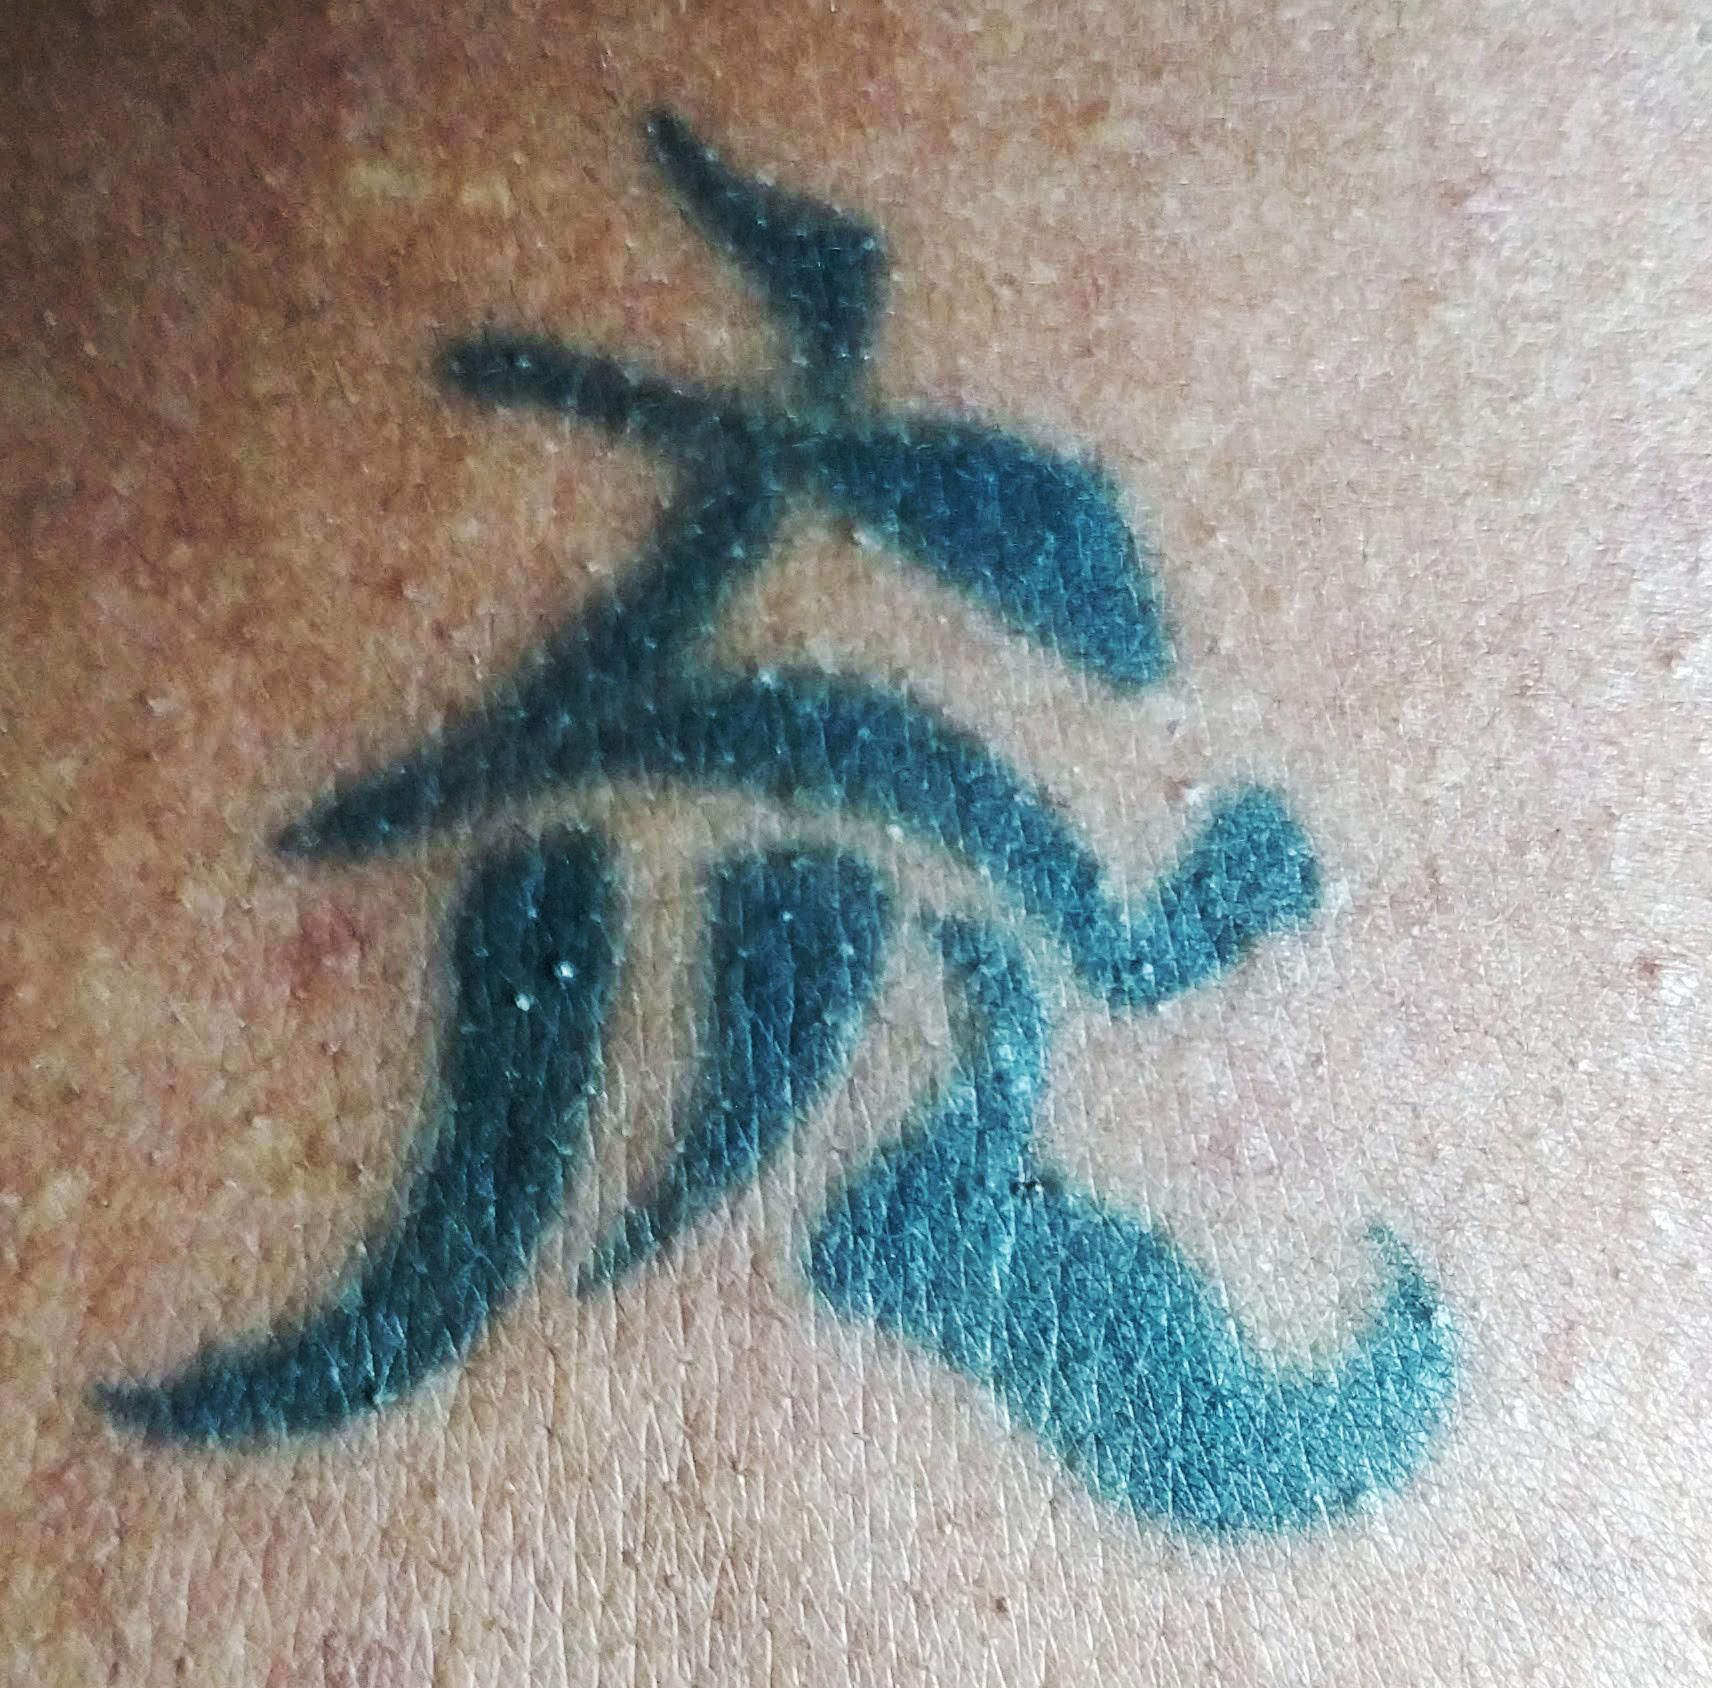 What Does This Symbol Mean My Buddy Has This Tattoo Which He Thinks